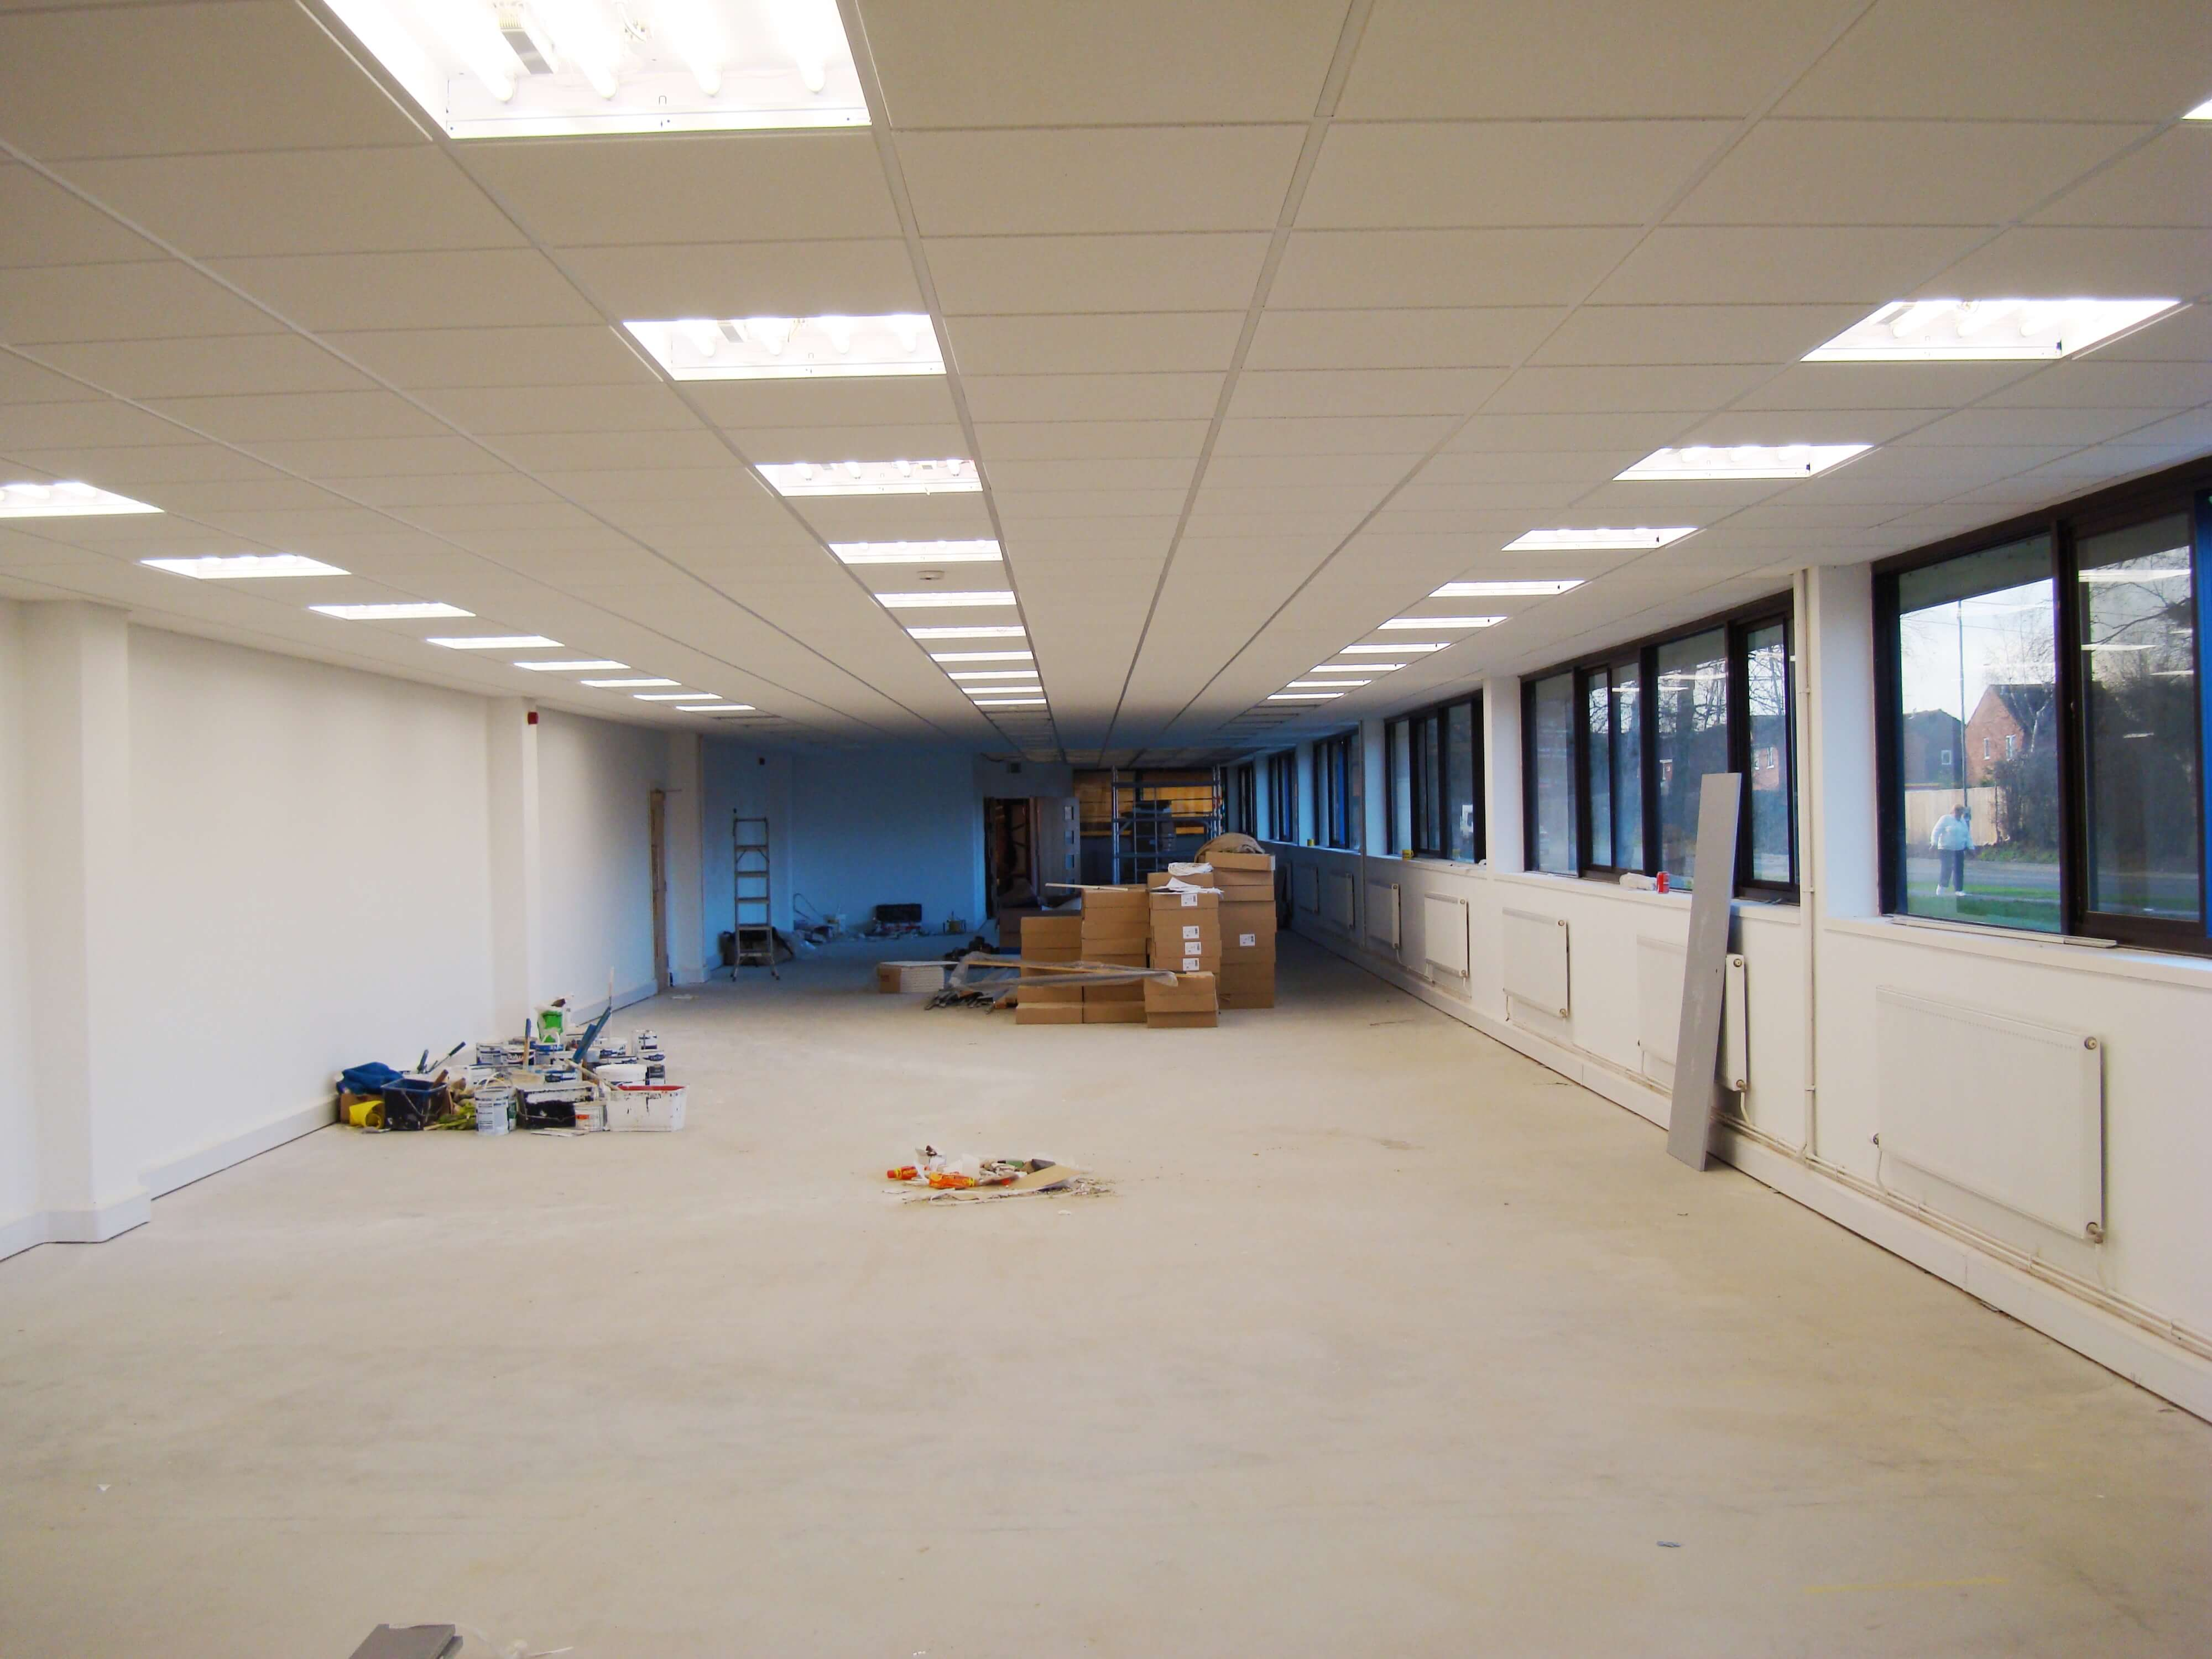 Suspended Ceiling installationSuspended Ceiling installation